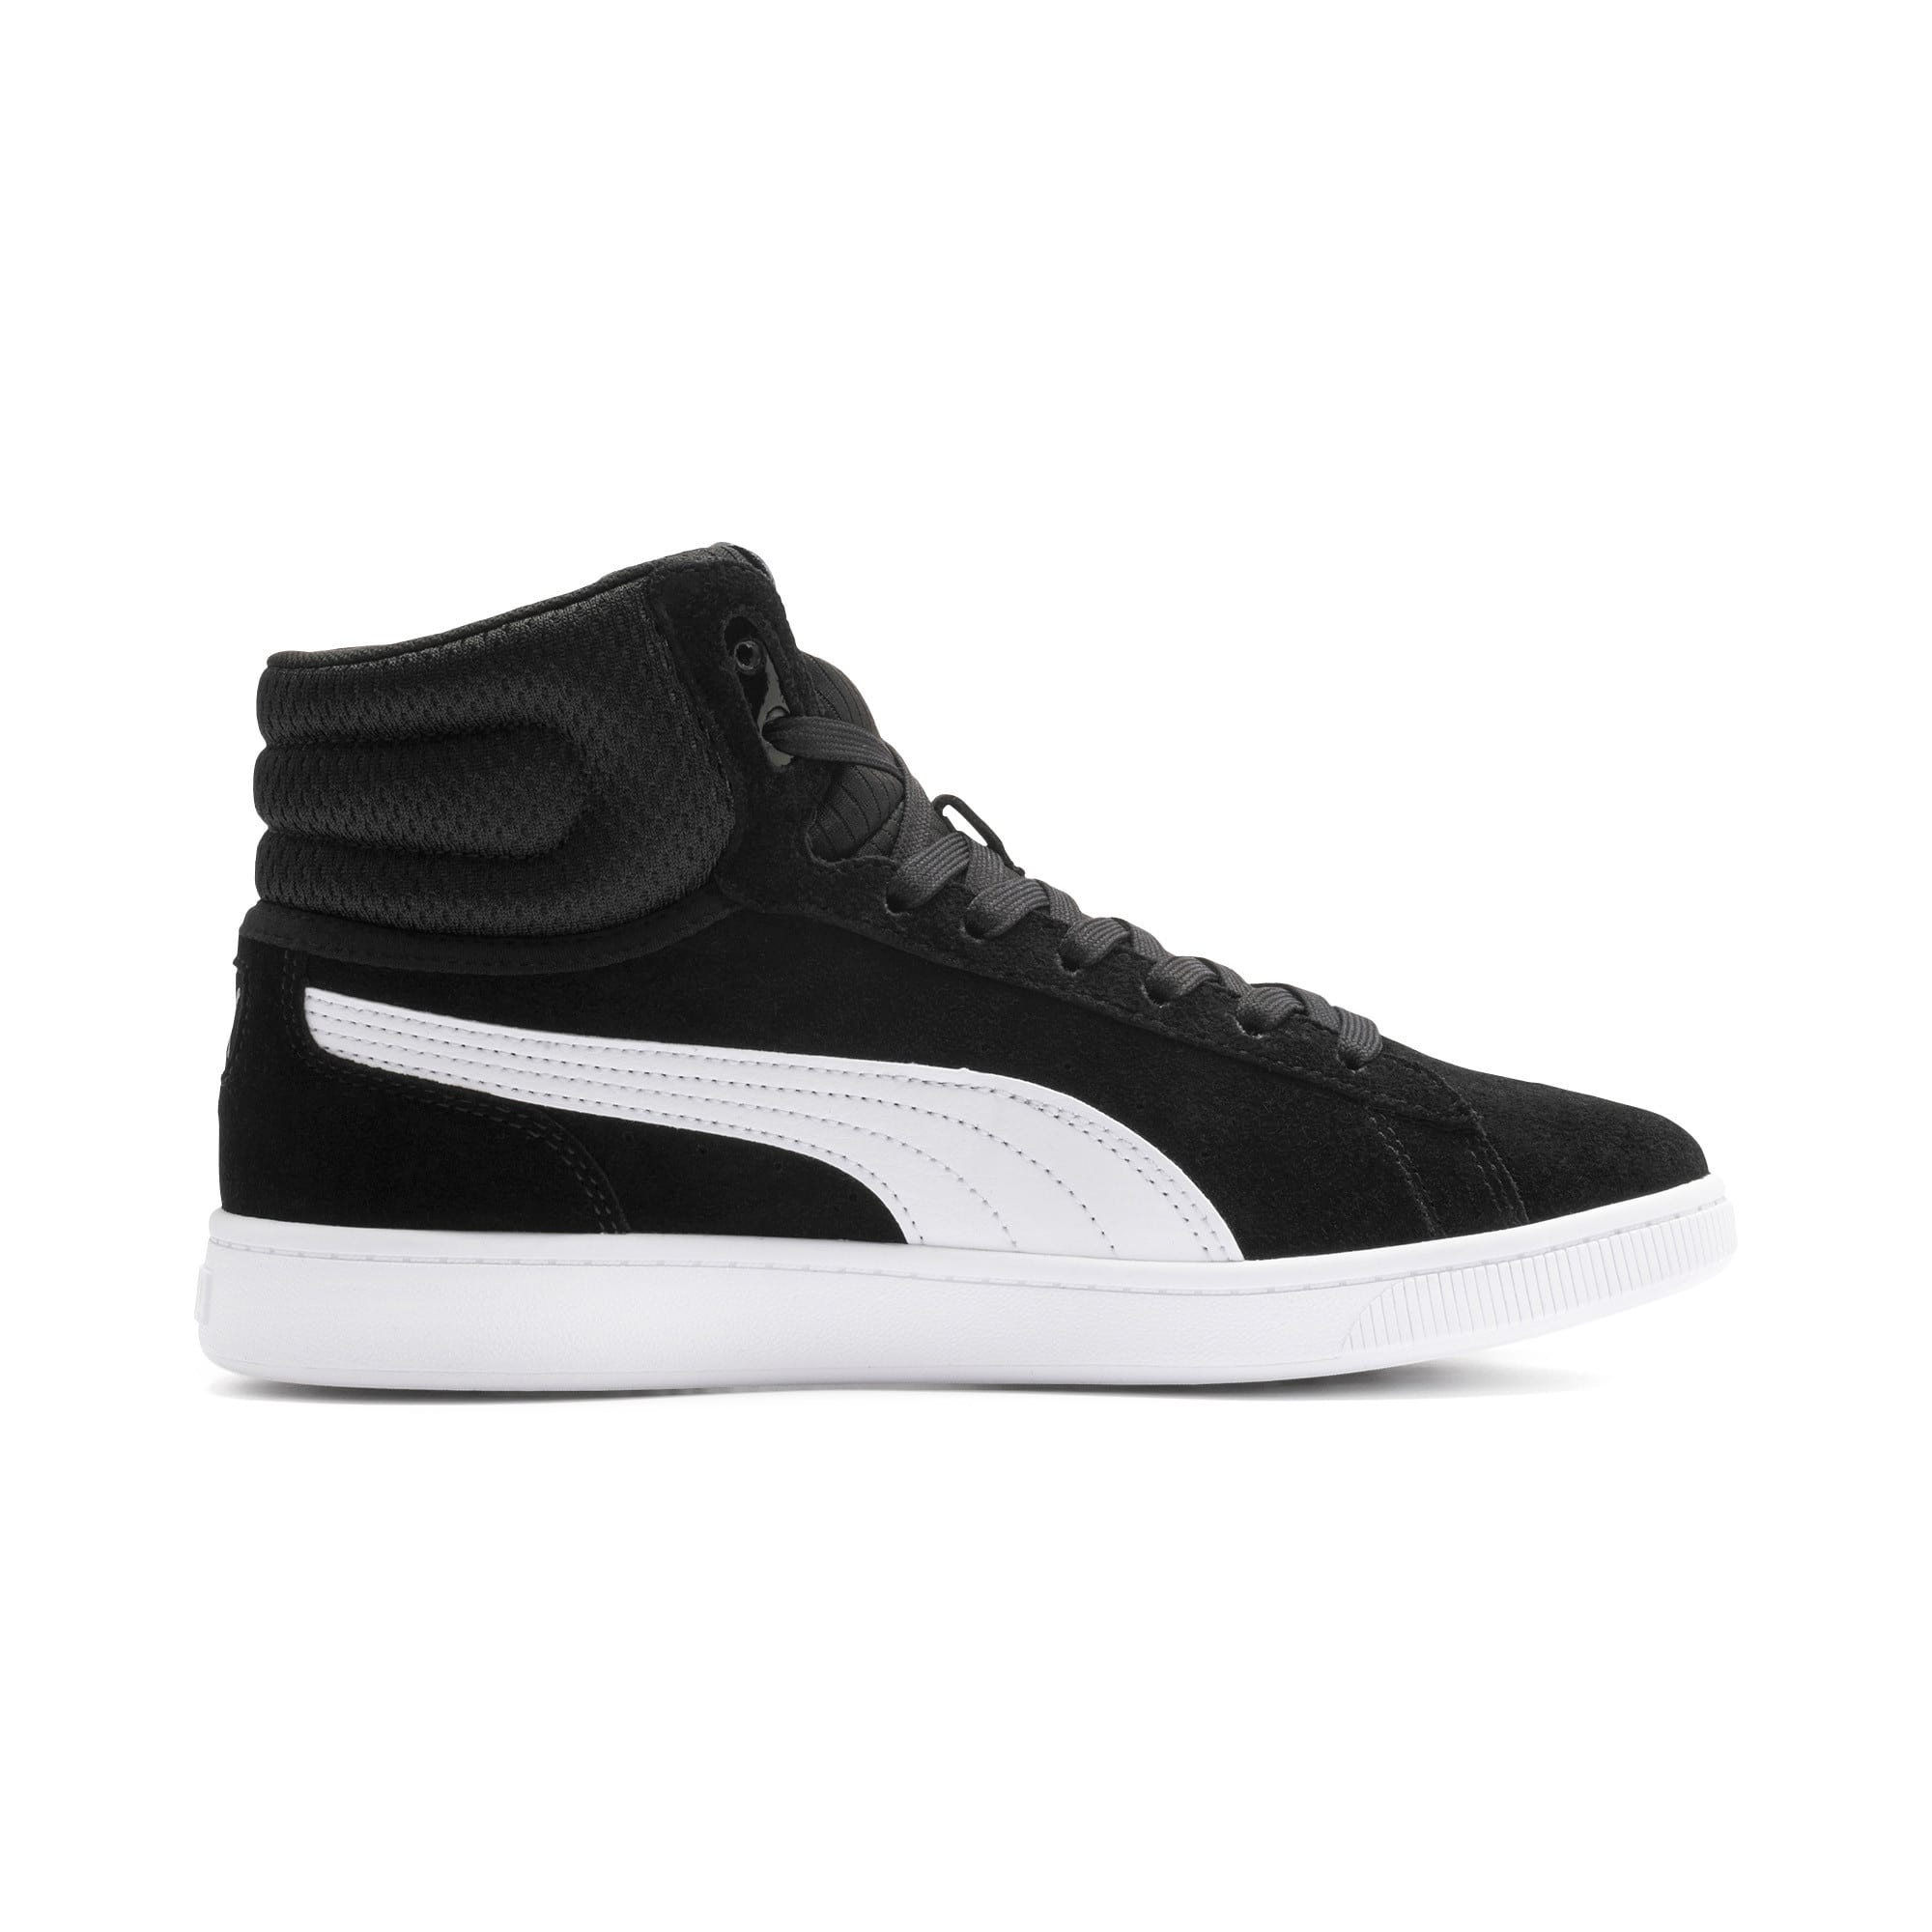 Thumbnail 6 of PUMA Vikky v2 Mid Women's Sneakers, Puma Black-White-Silver-Pink, medium